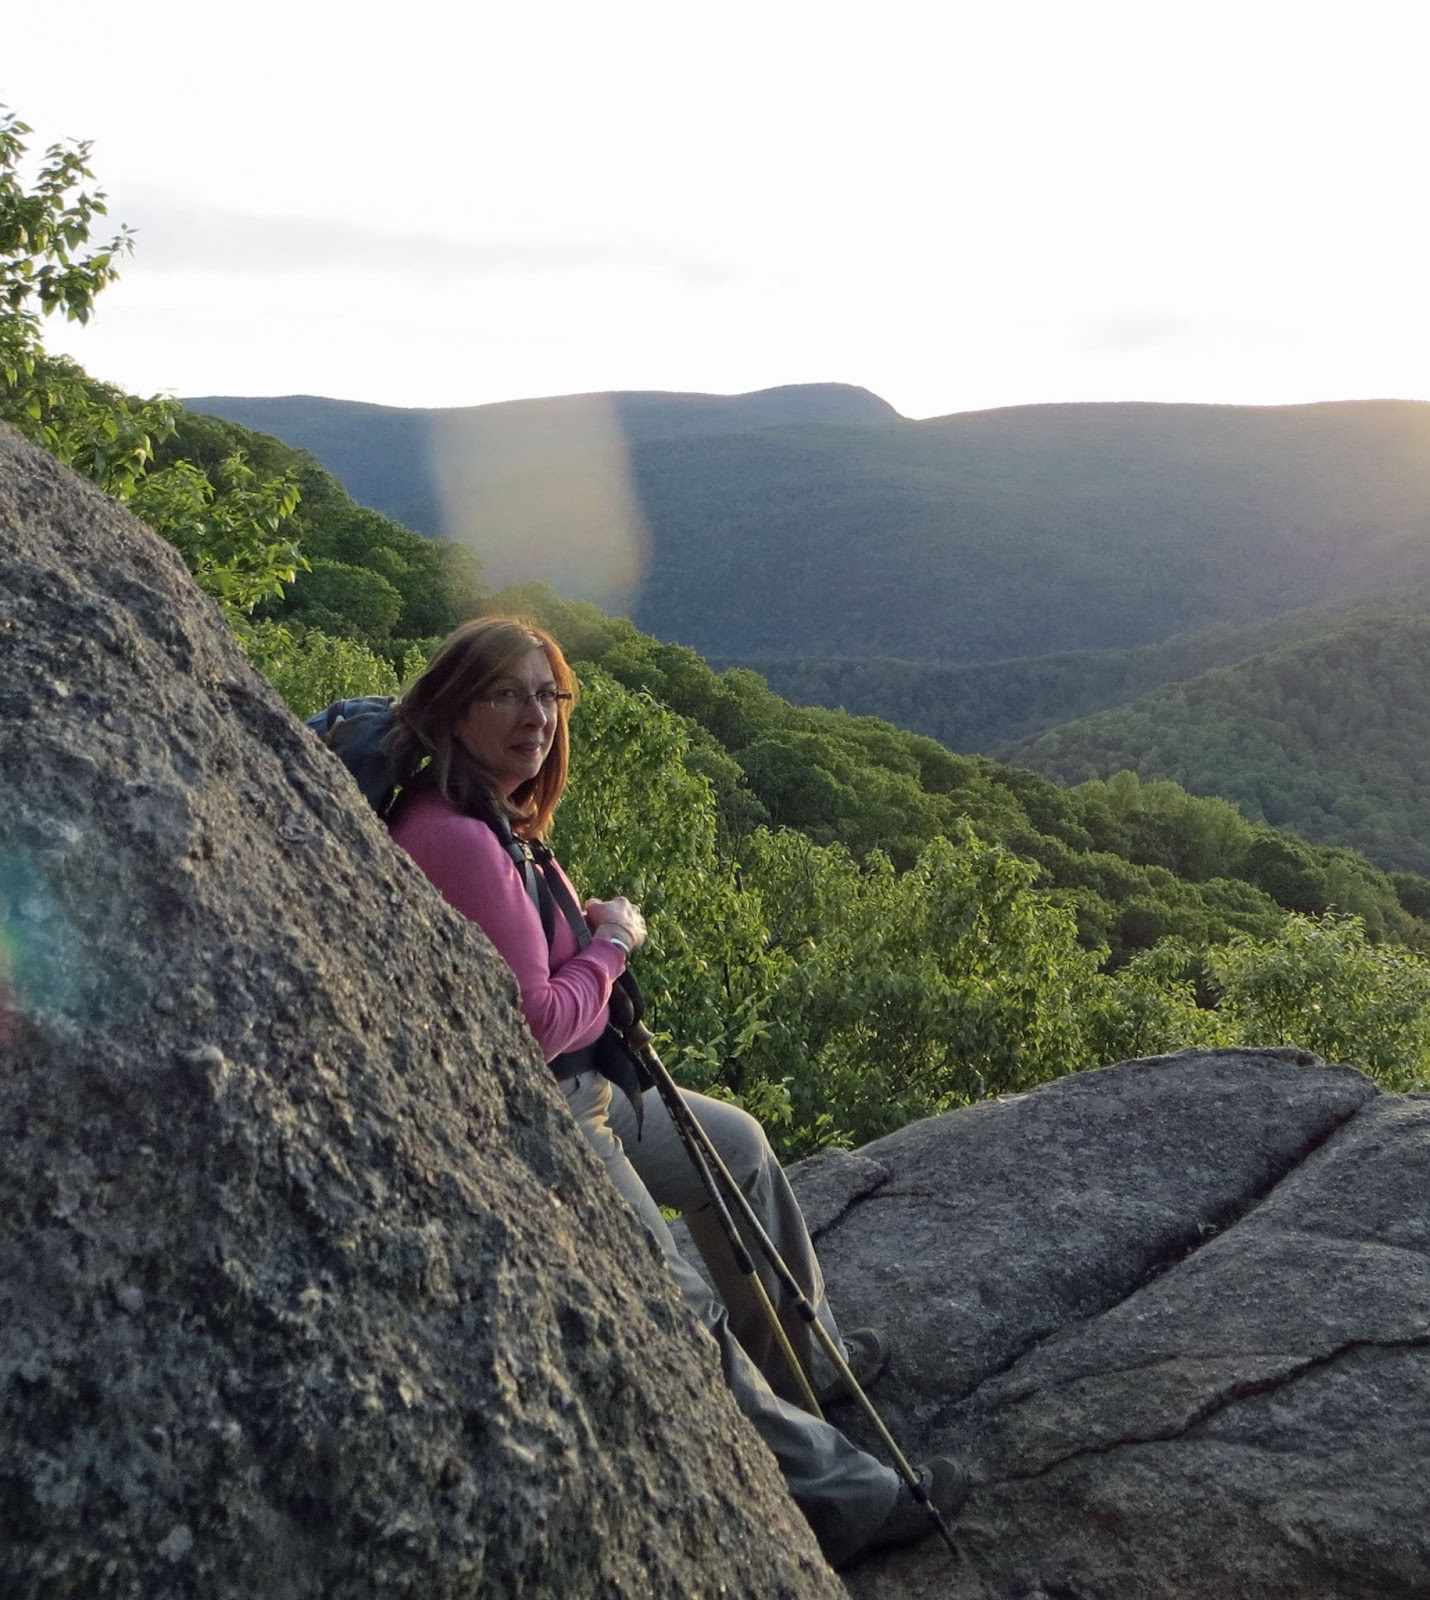 Old Rag Mountain Hikes/Patrols By RSL: LONG TIME SINCE